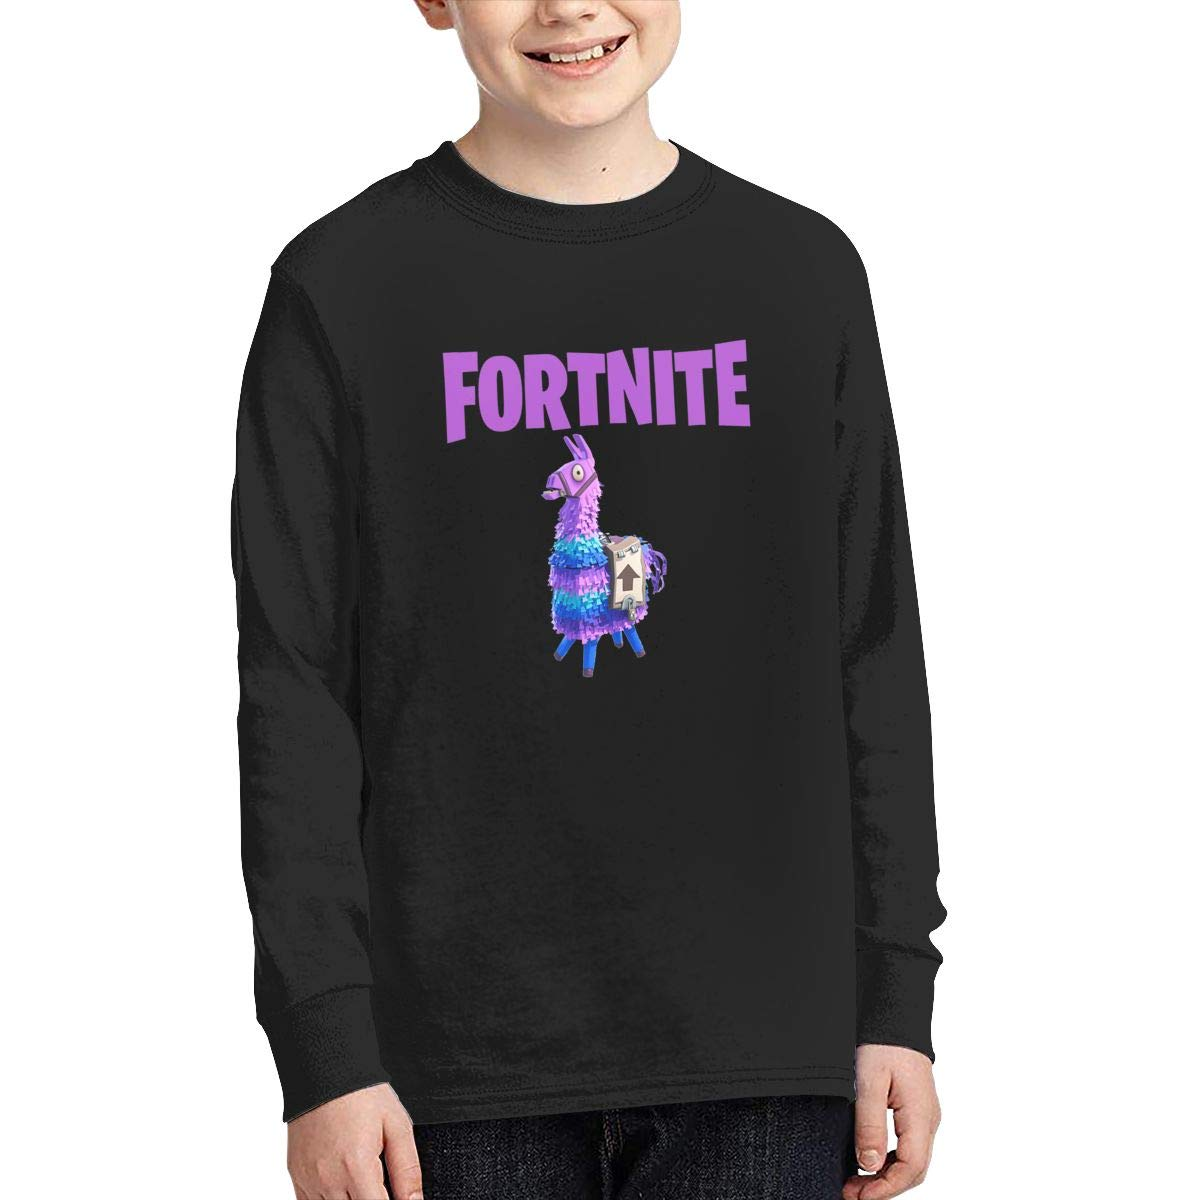 Fortnite Llama Unicorn Long Sleeve Teen Boys Sweater gamefotsoa